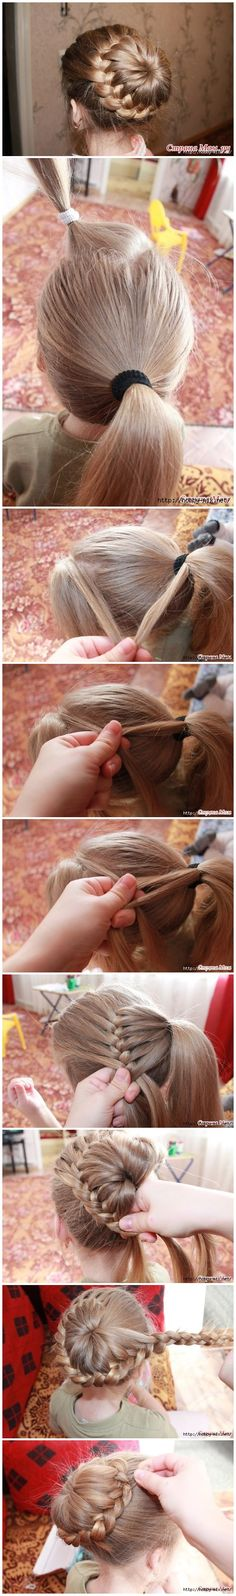 WonderfulDIY.com | Wonderful DIY Beautiful Braids Around The Tail | http://wonderfuldiy.com